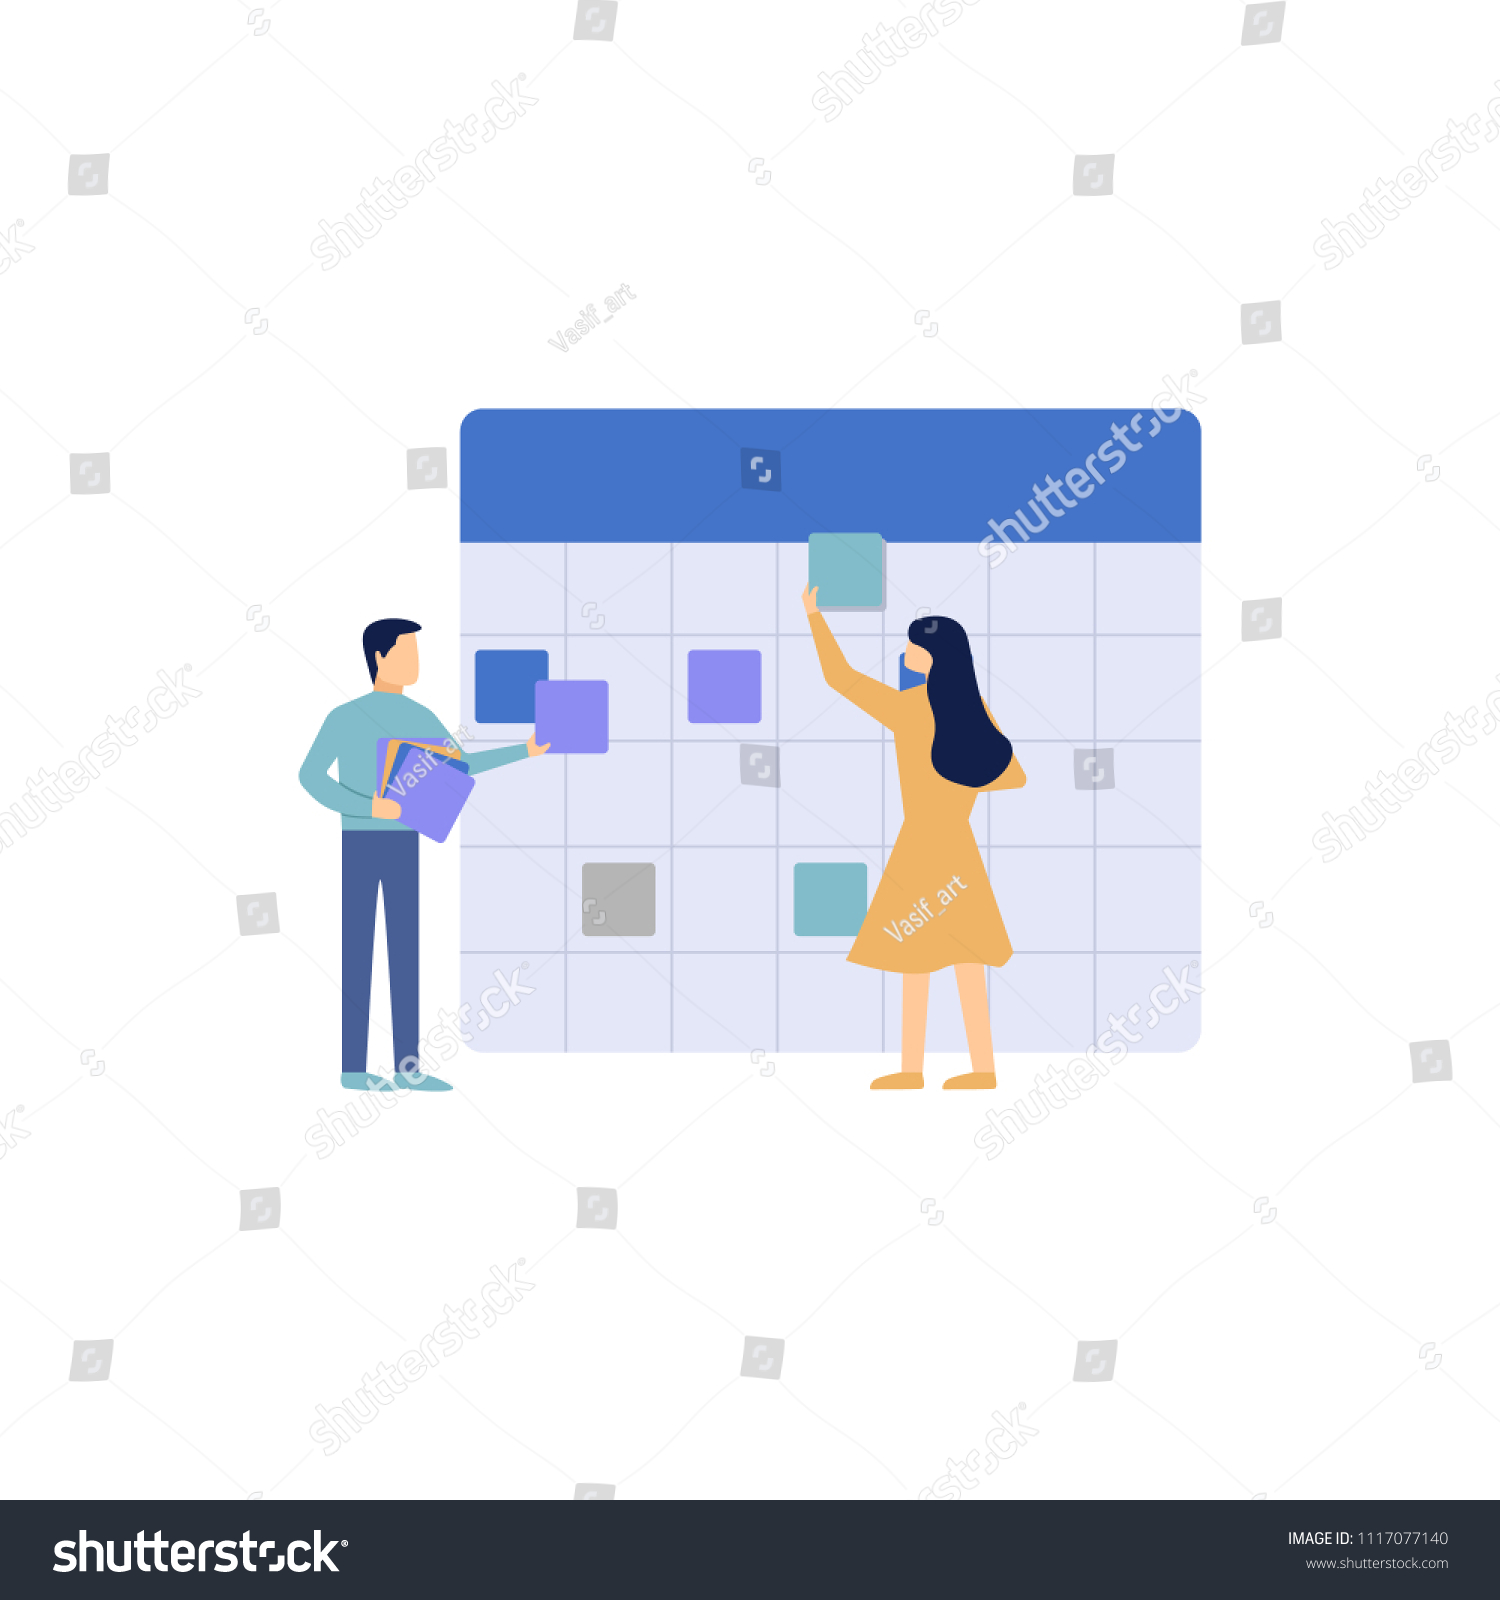 vector illustration little people characters make stock vector